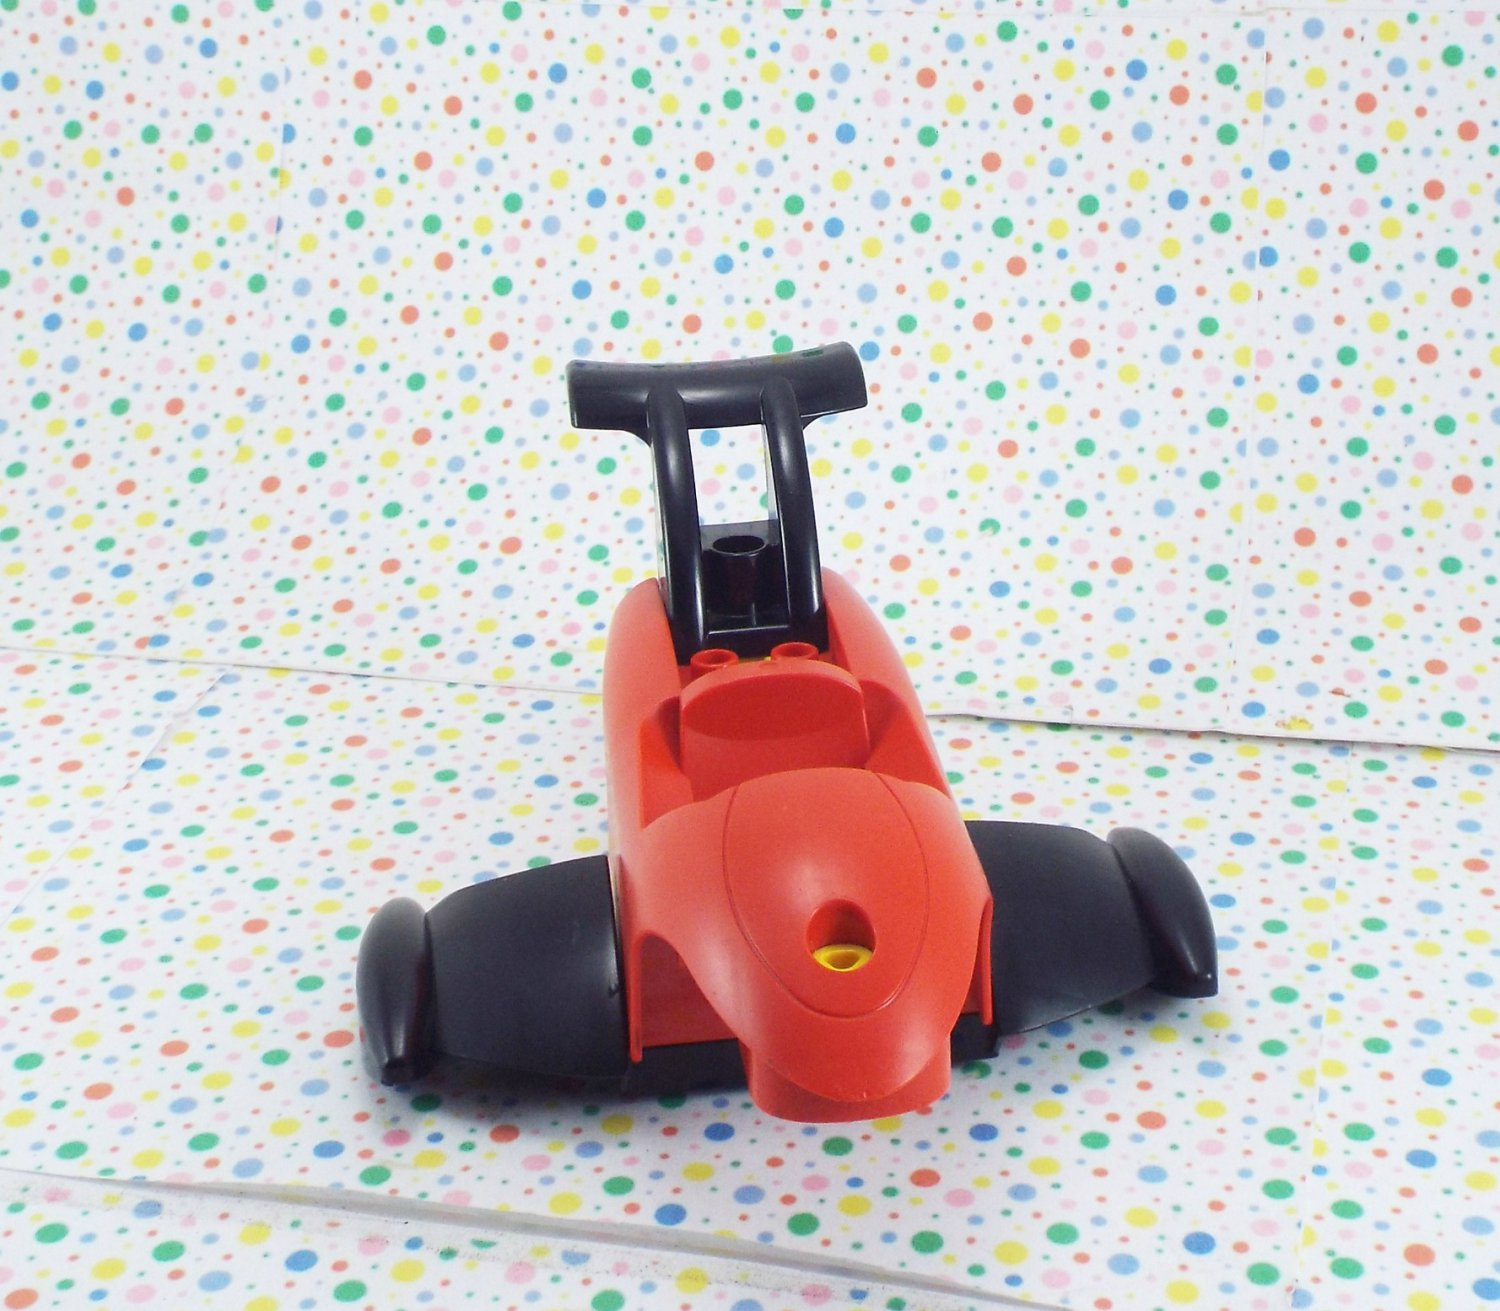 Lego Duplo Toolo Radical Racers Action Wheelers Parts